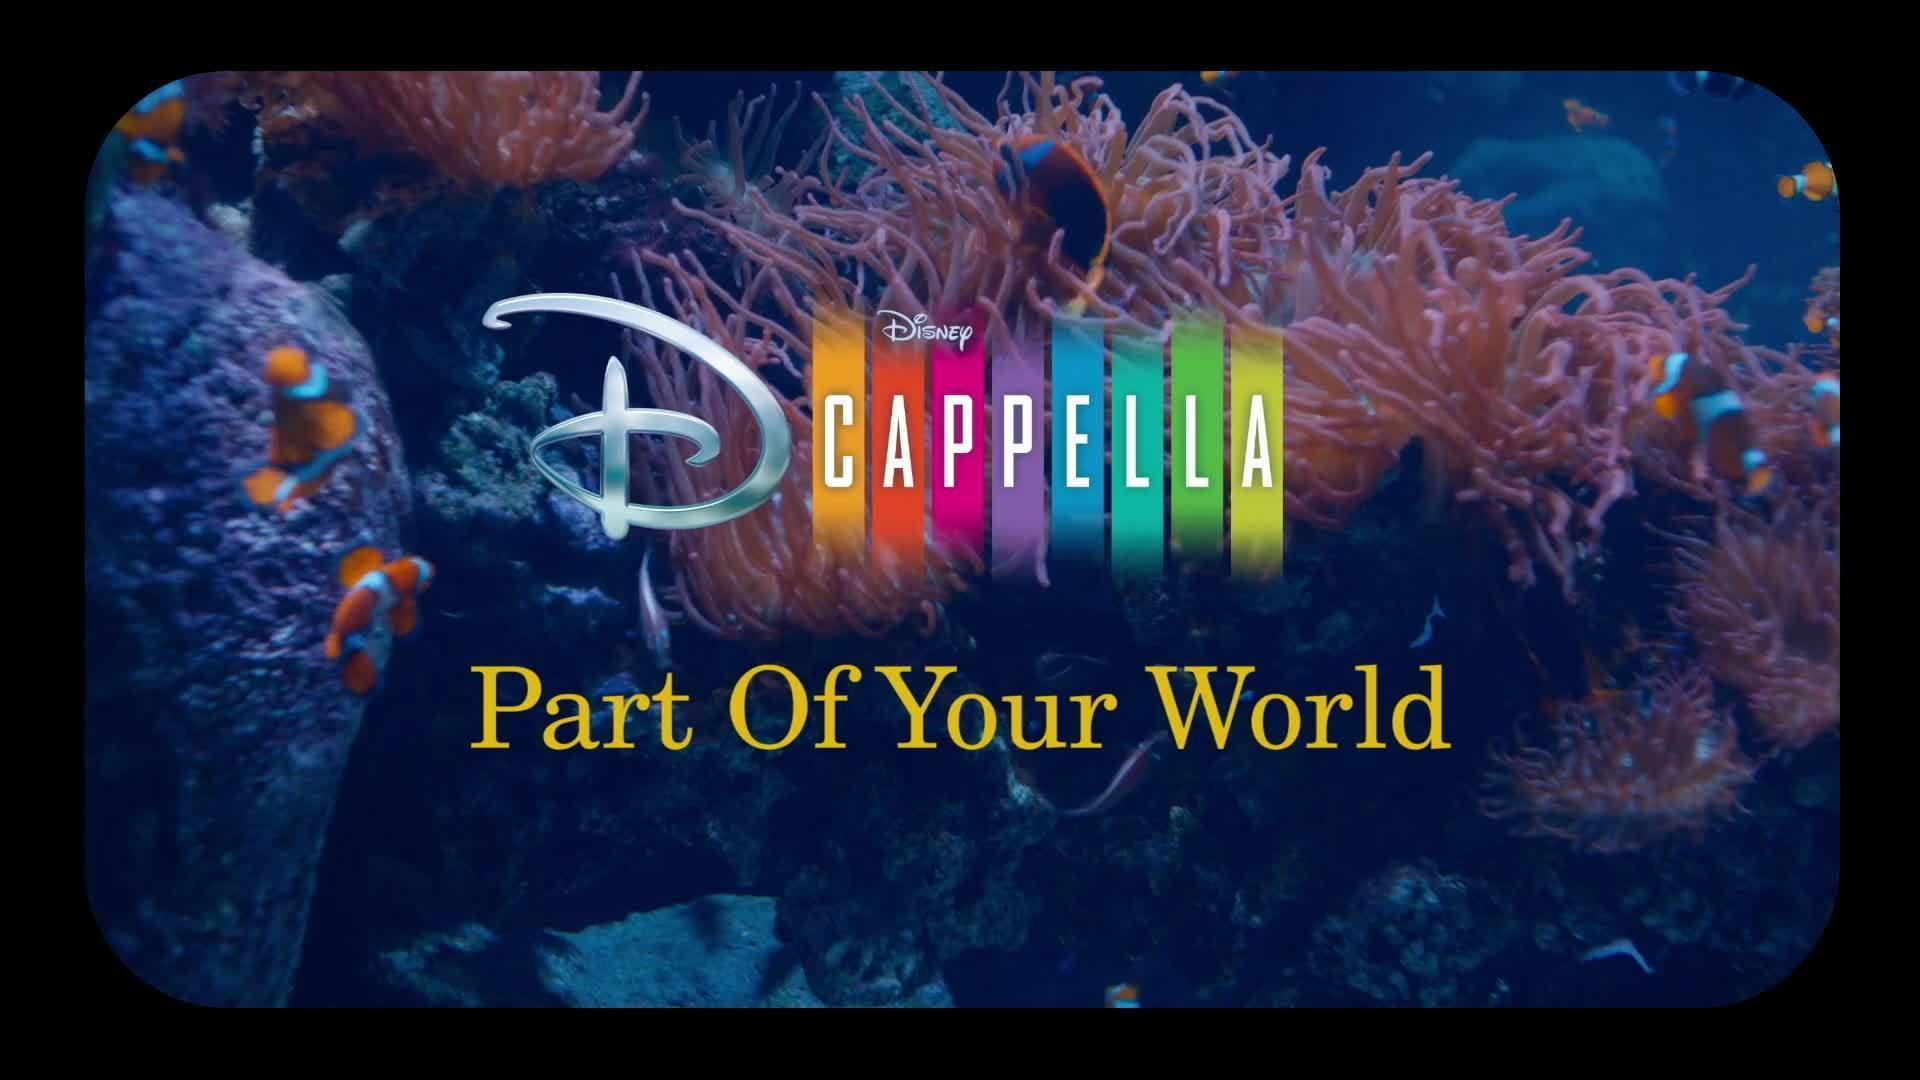 DCappella - Part of Your World